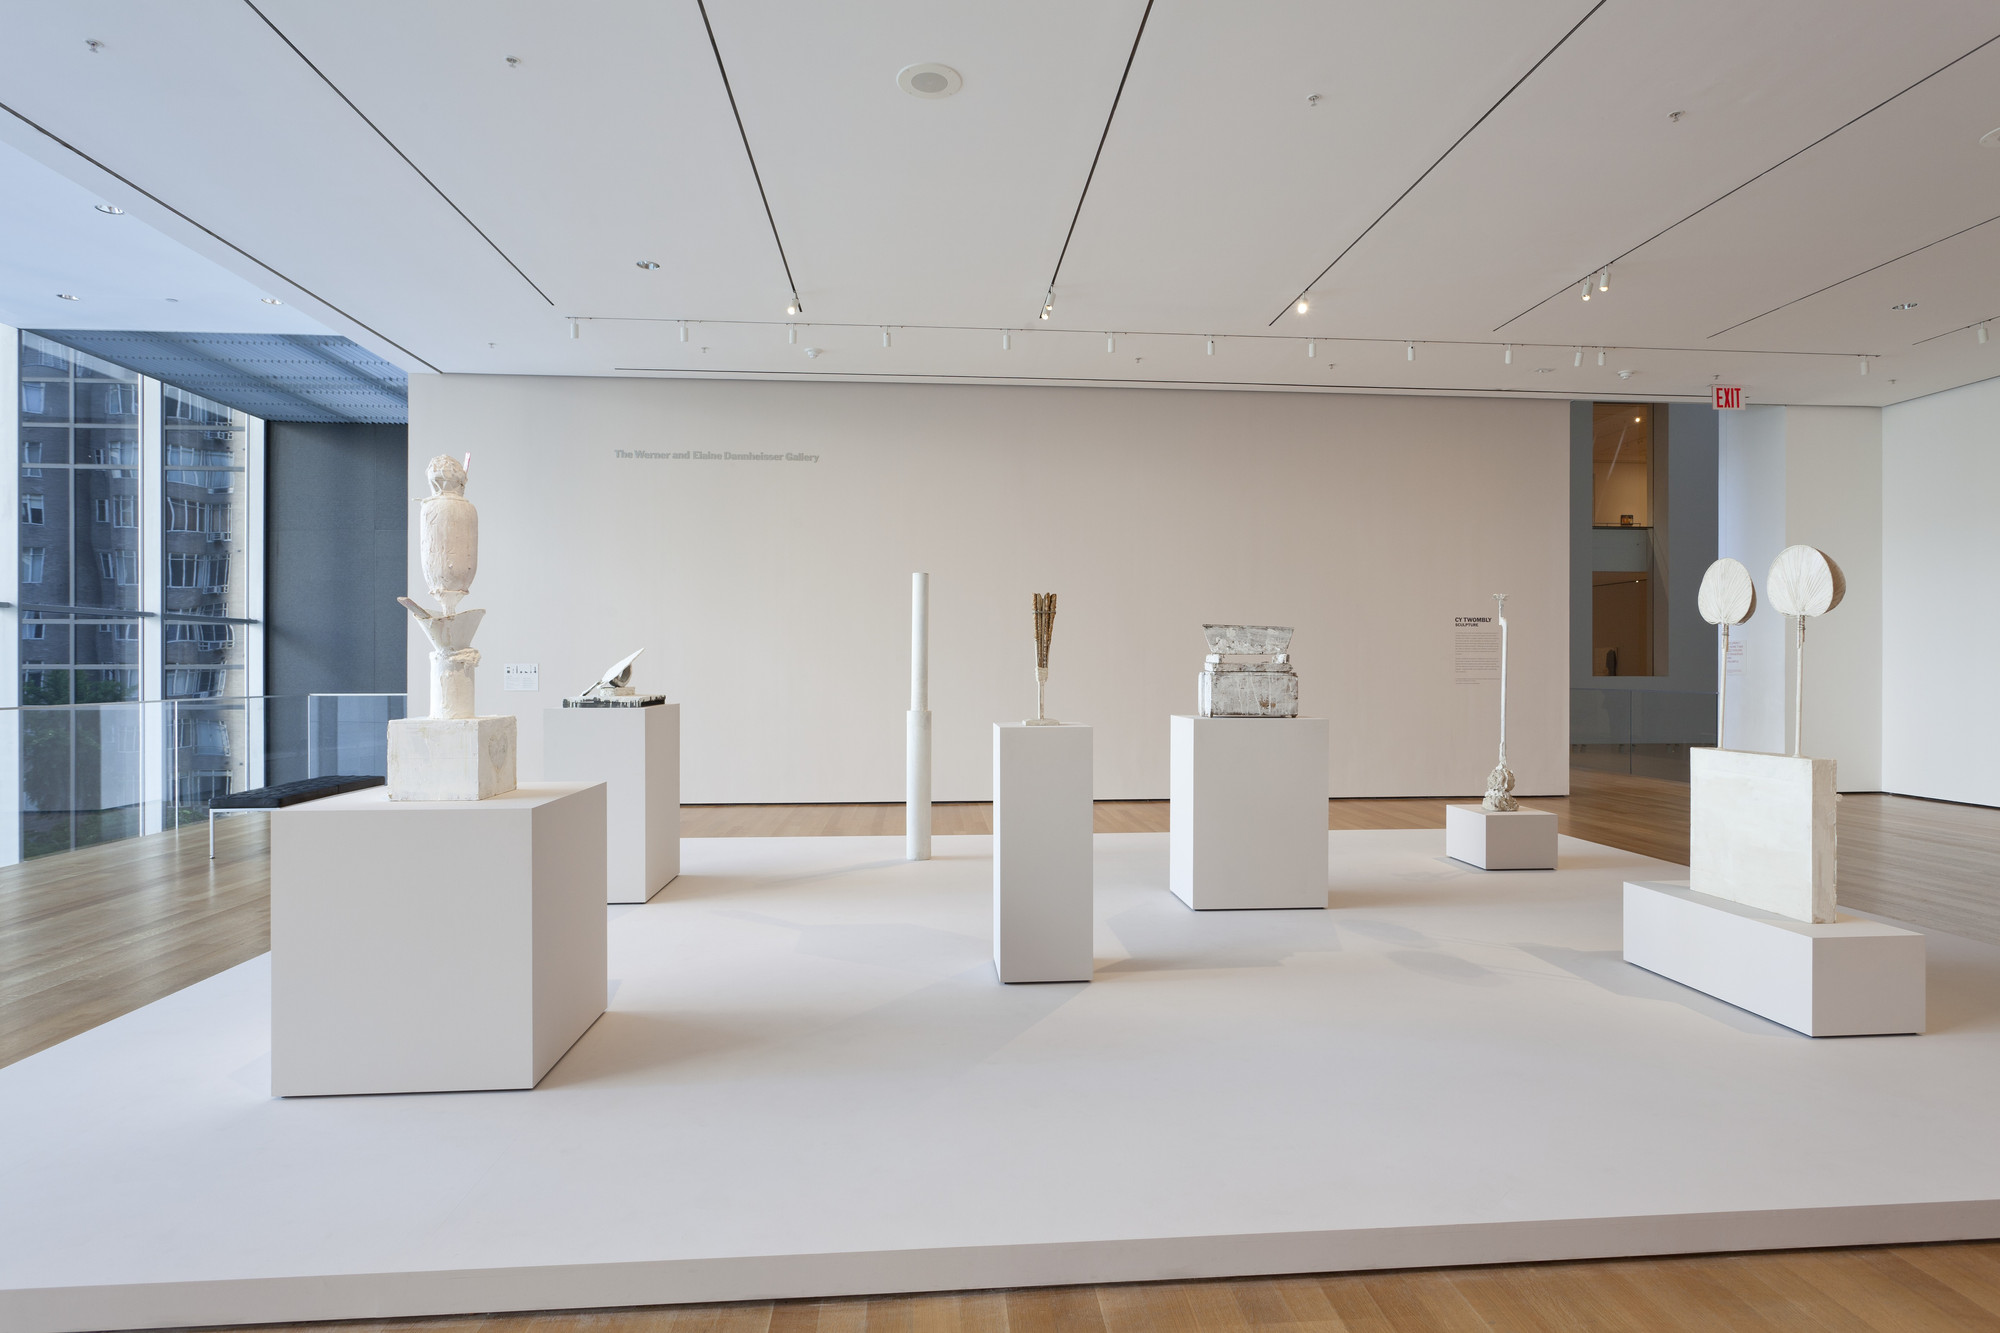 "Installation view of the exhibition, ""Cy Twombly: Sculpture"" May 20, 2011–January 2, 2012. IN2159.1. Photograph by Jonathan Muzikar."